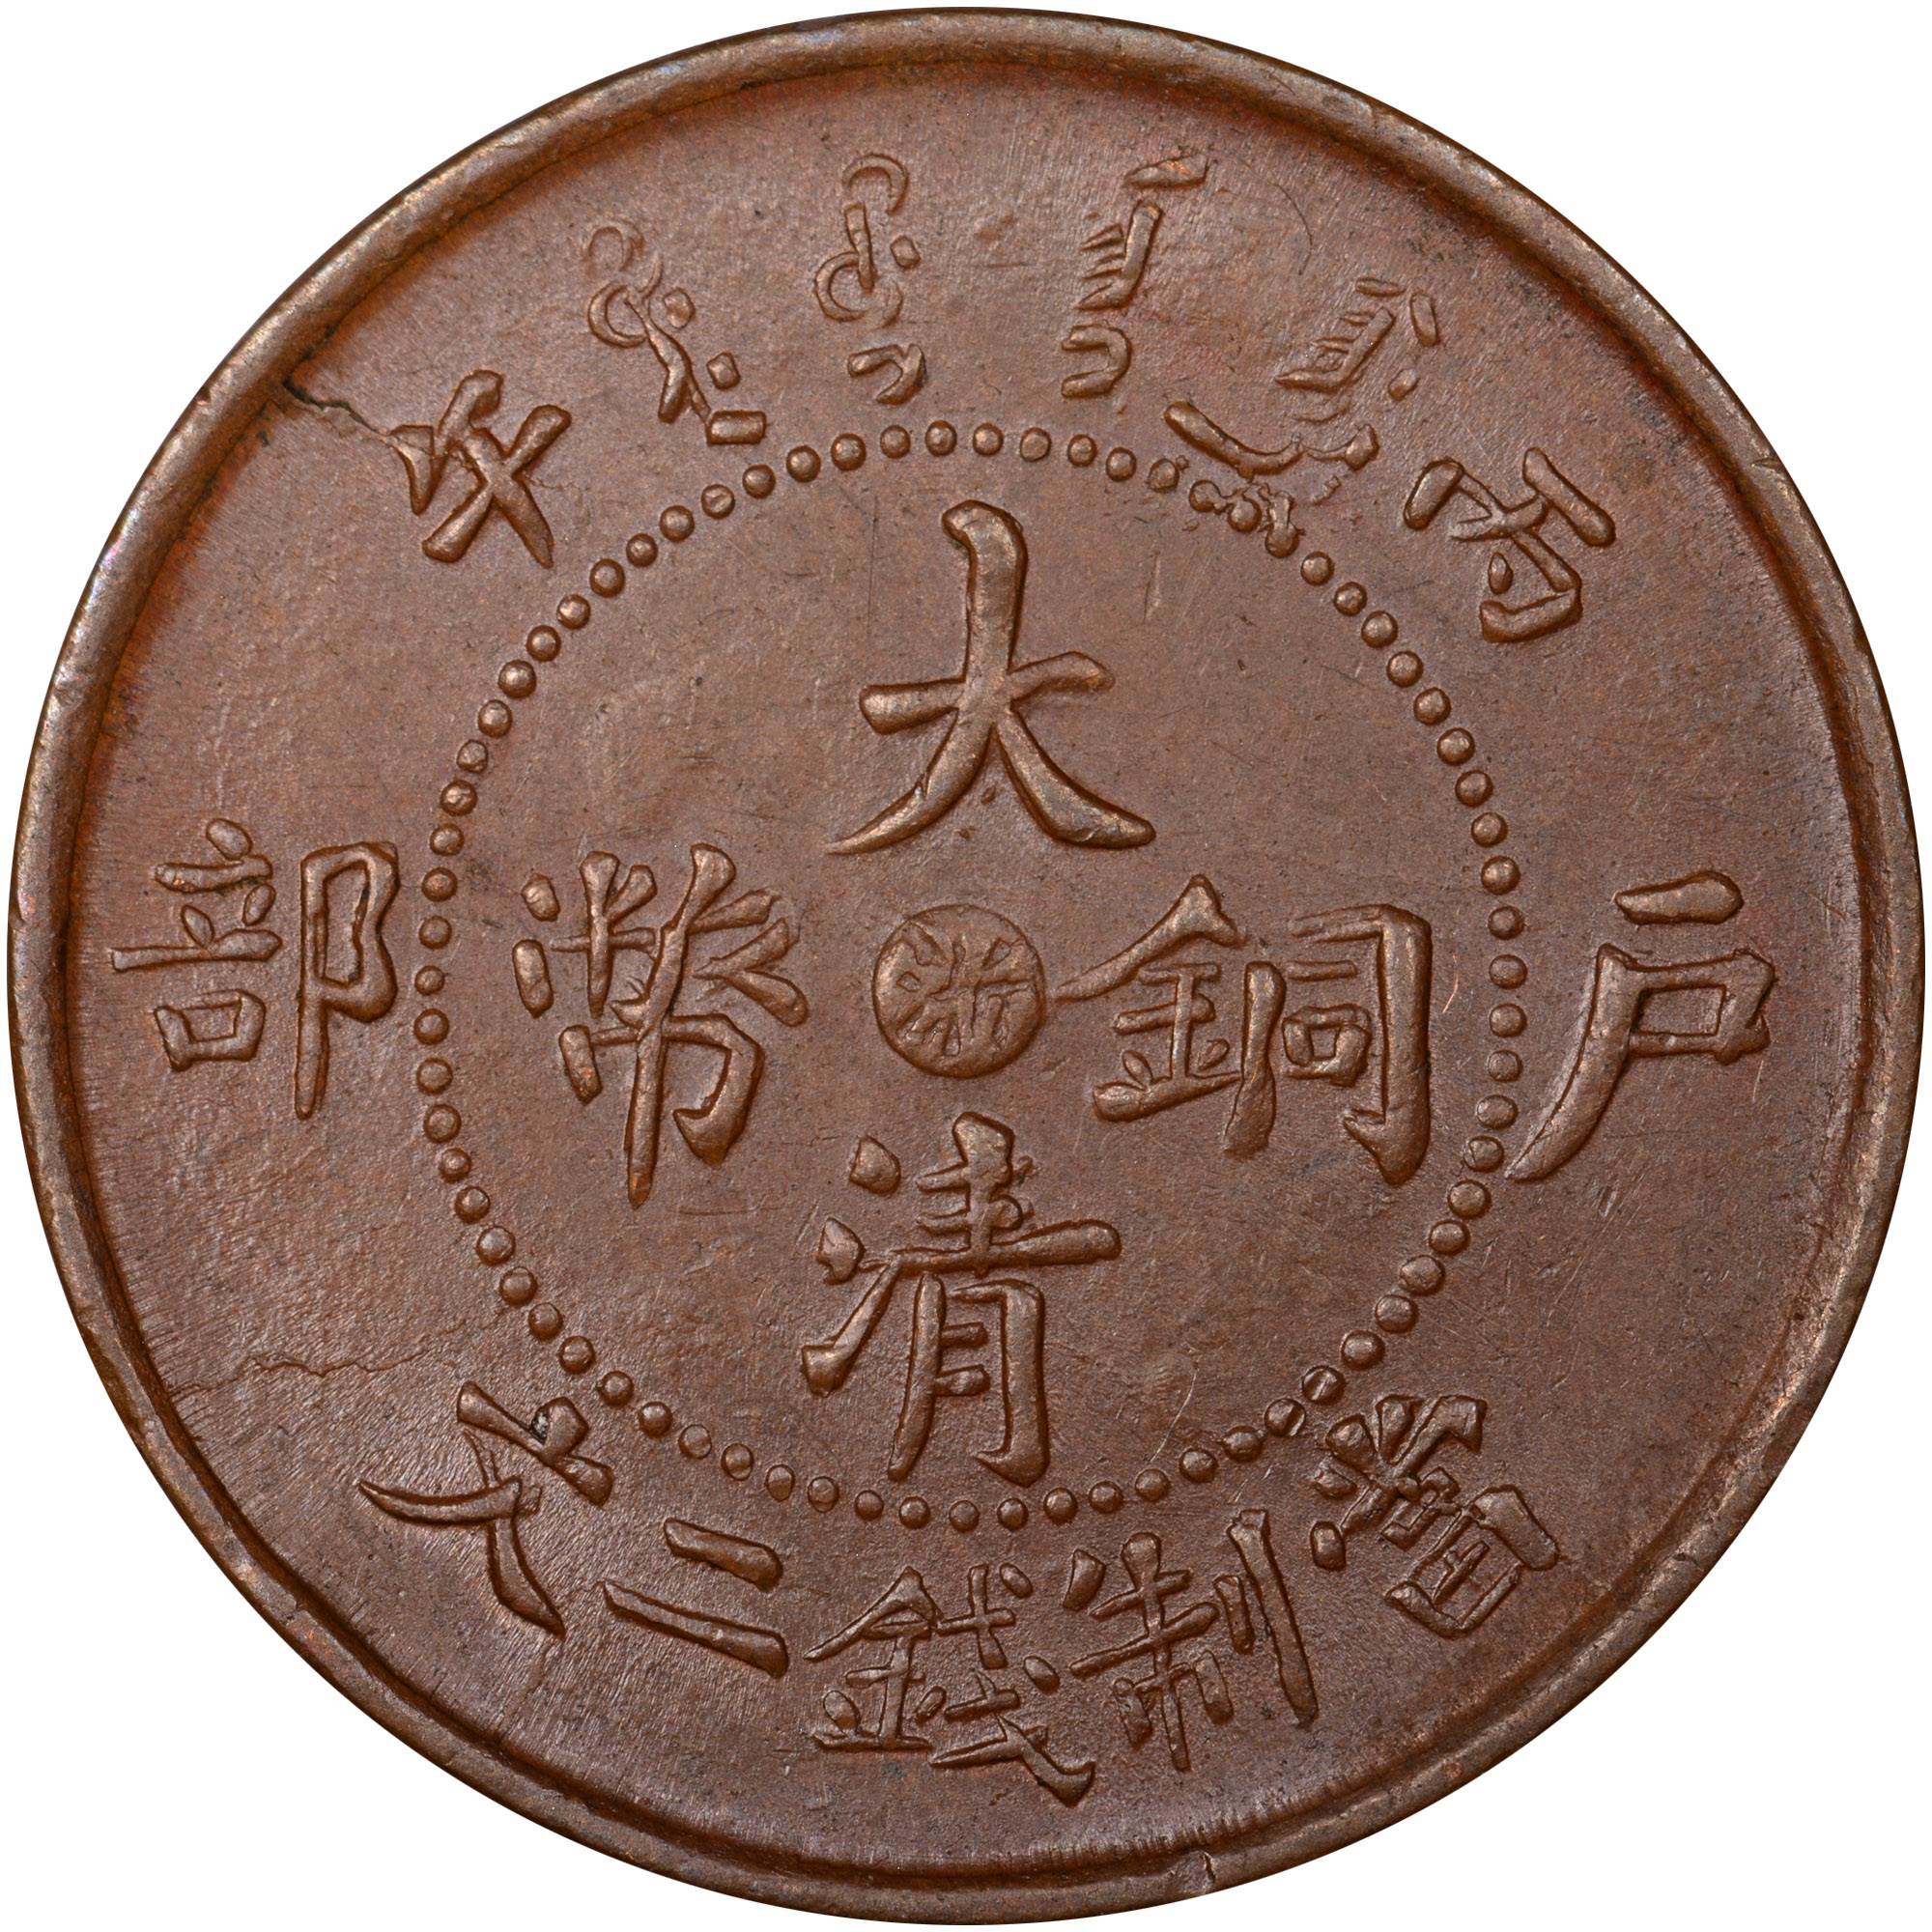 1906 China CHEKIANG PROVINCE 2 Cash obverse